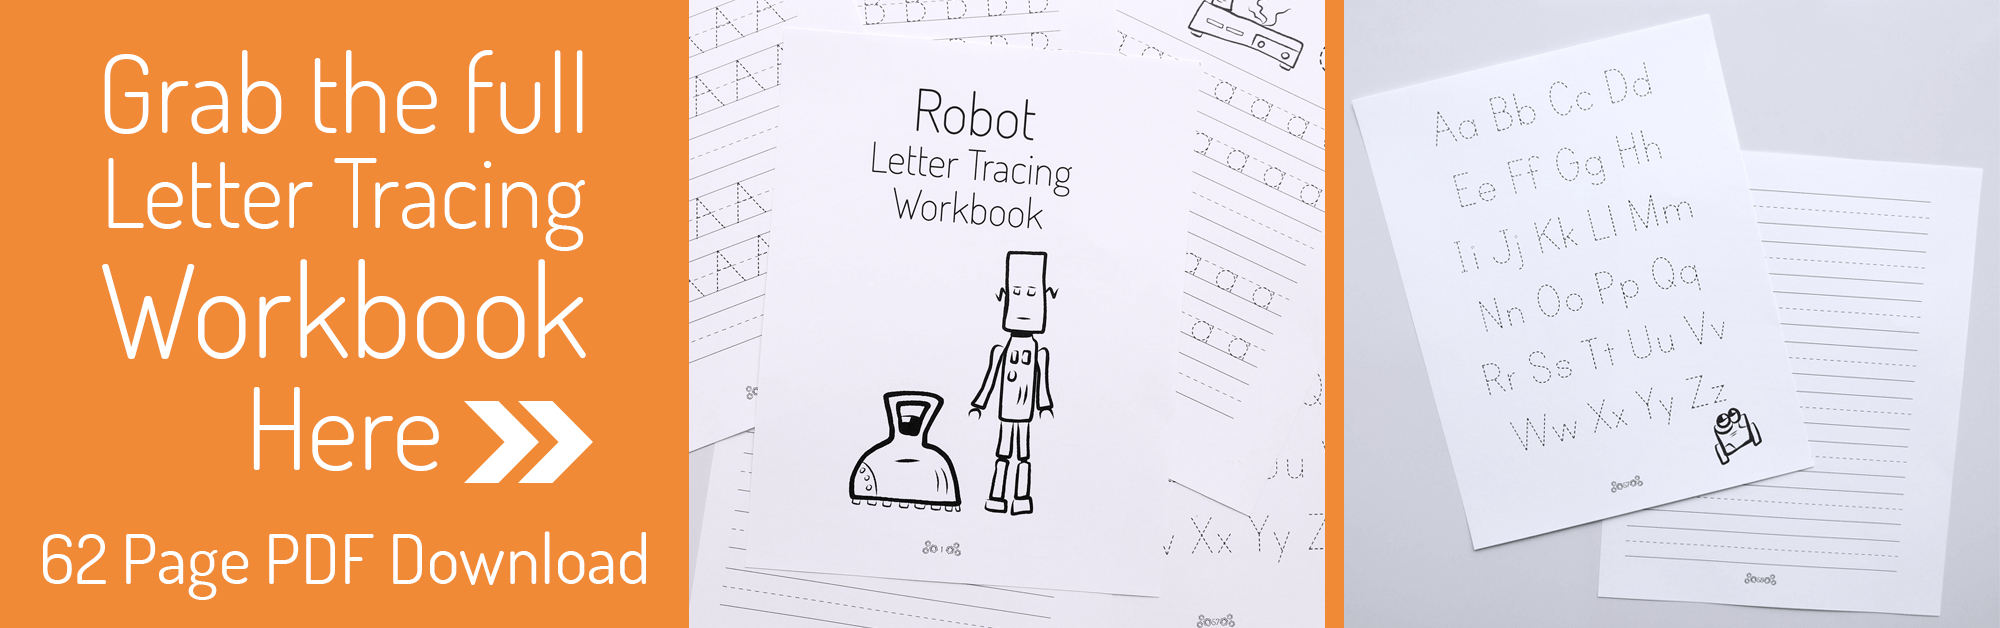 Printable Letter Tracing Workbook - Full Alphabet plus notebook writing pages with robots